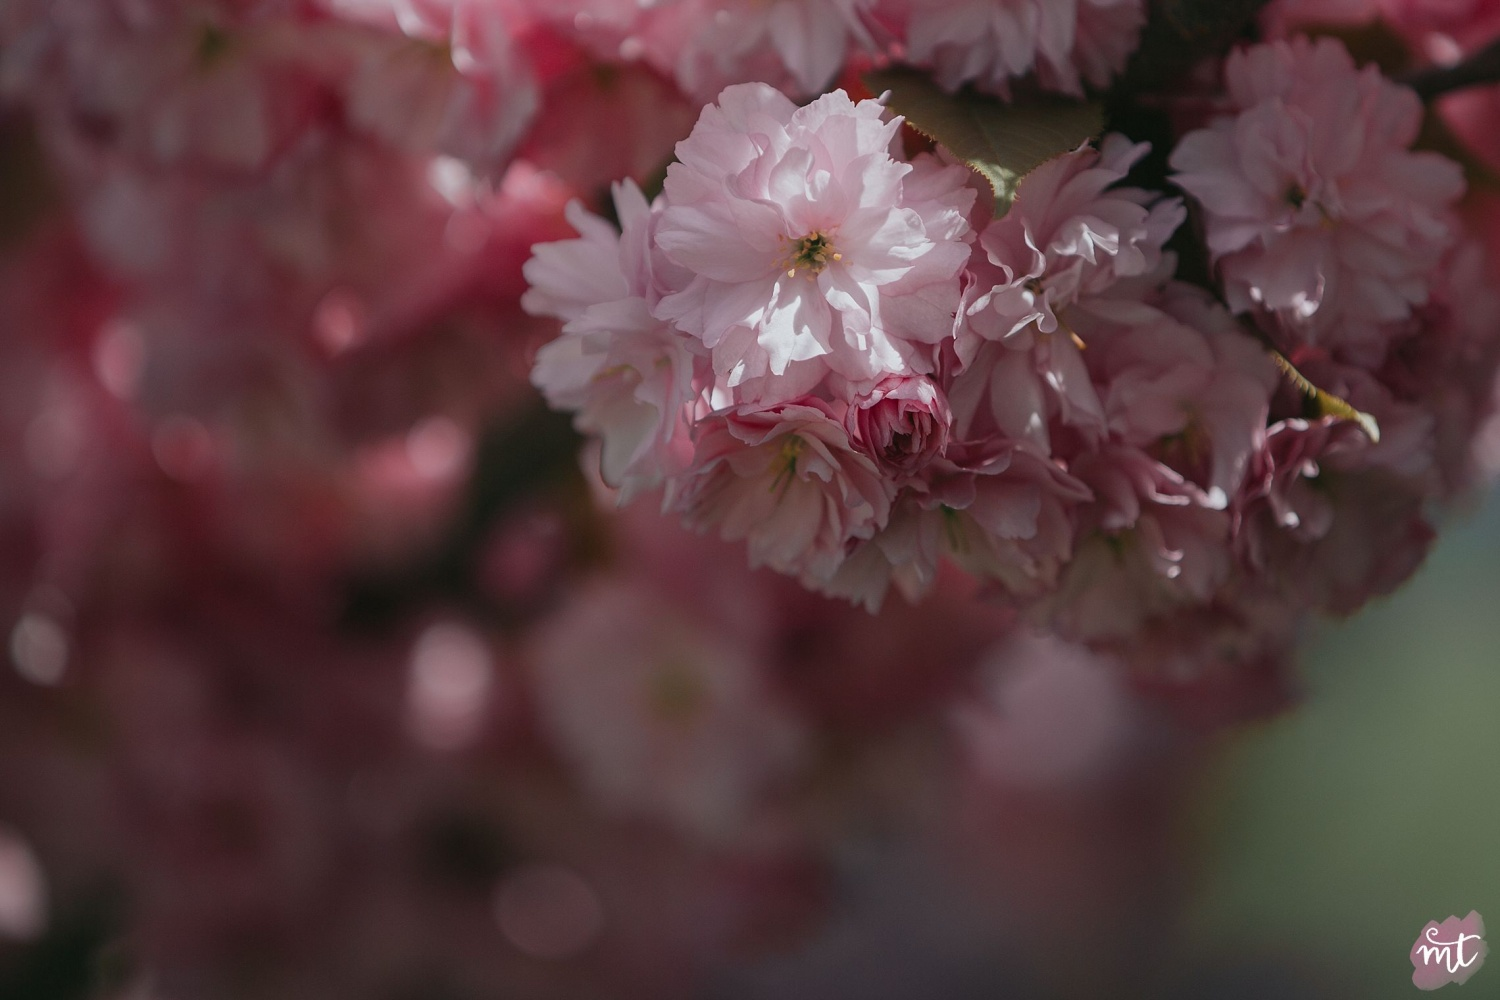 Seasons, Summer, Natural Light, UK Photographer, Real Life, Mother Nature, Cherry Blossom, Seasons: Spring, Summer, Autumn Winter English countryside